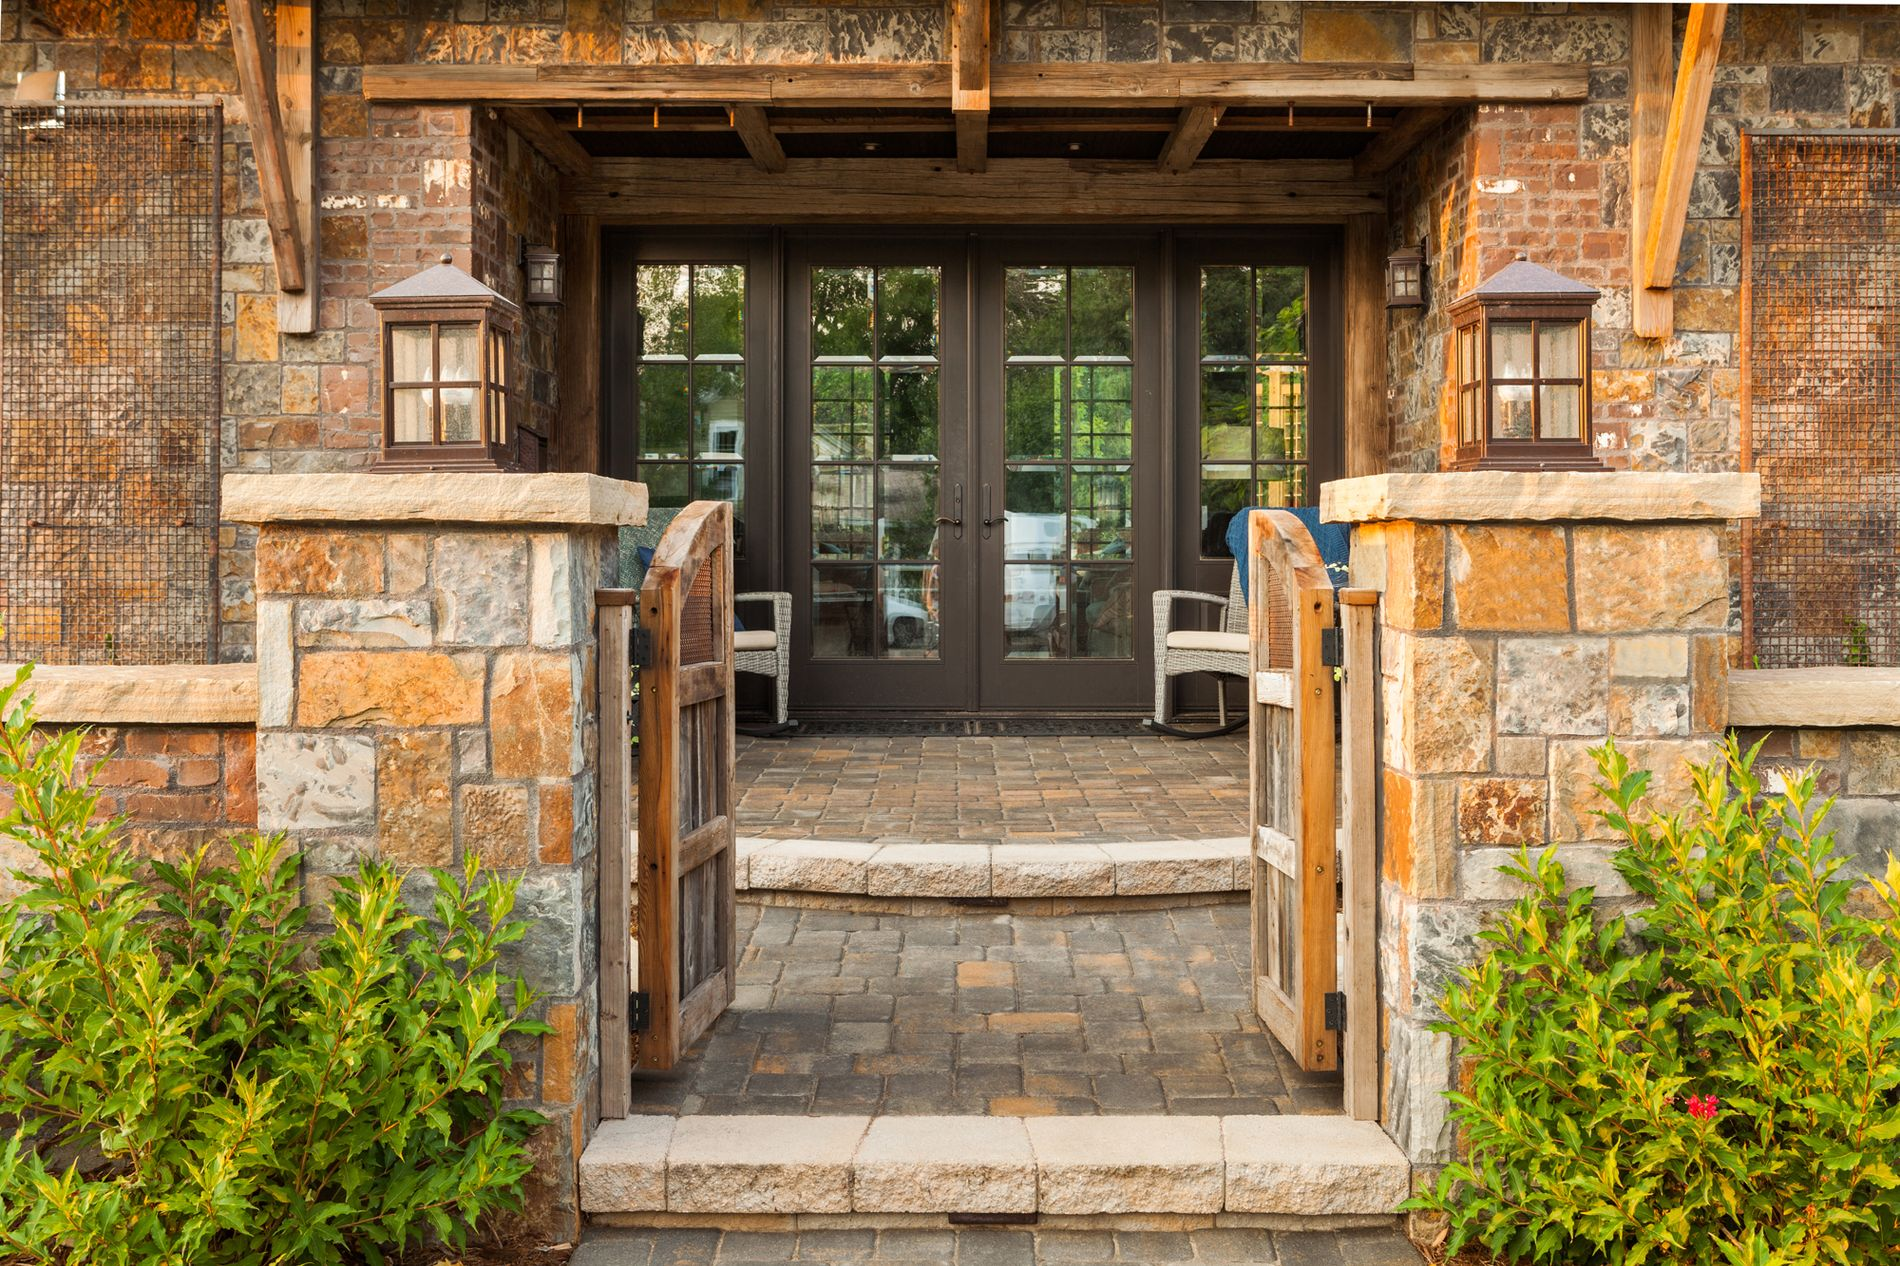 Paver front entrance with steps to front porch